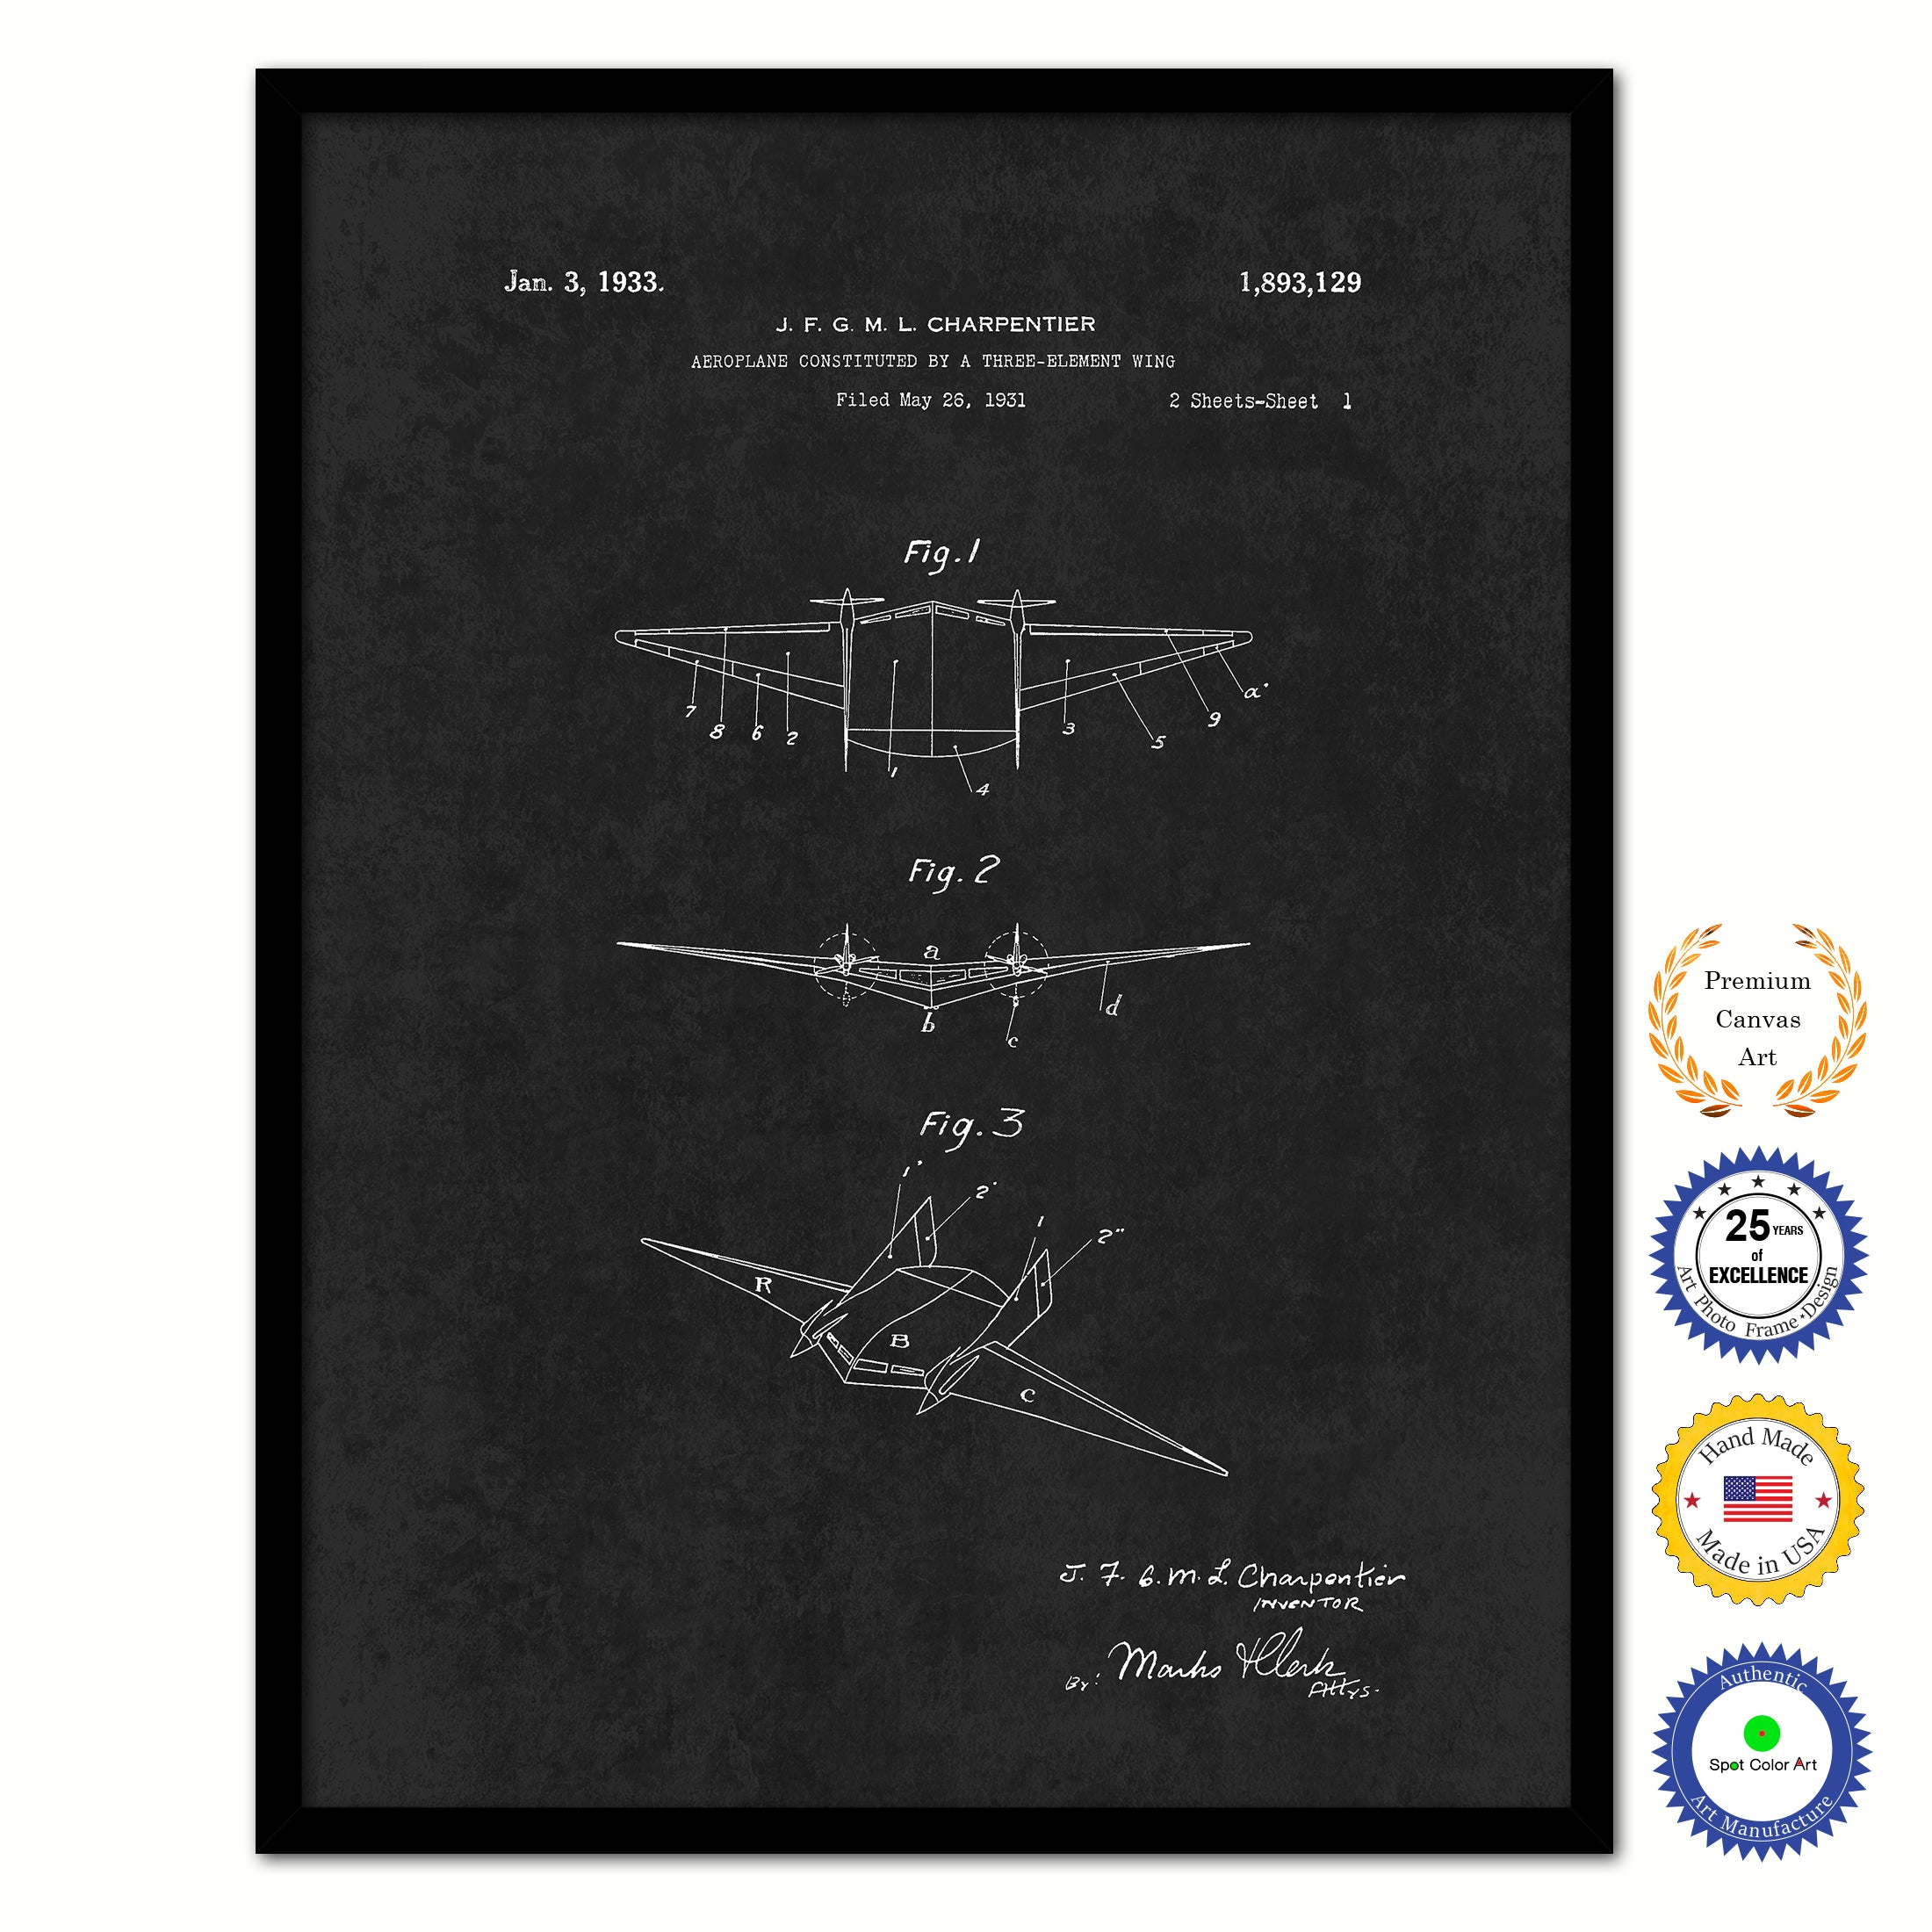 1933 Three Element Wing Airplane Vintage Patent Artwork Black Framed Canvas Home Office Decor Great for Pilot Gift